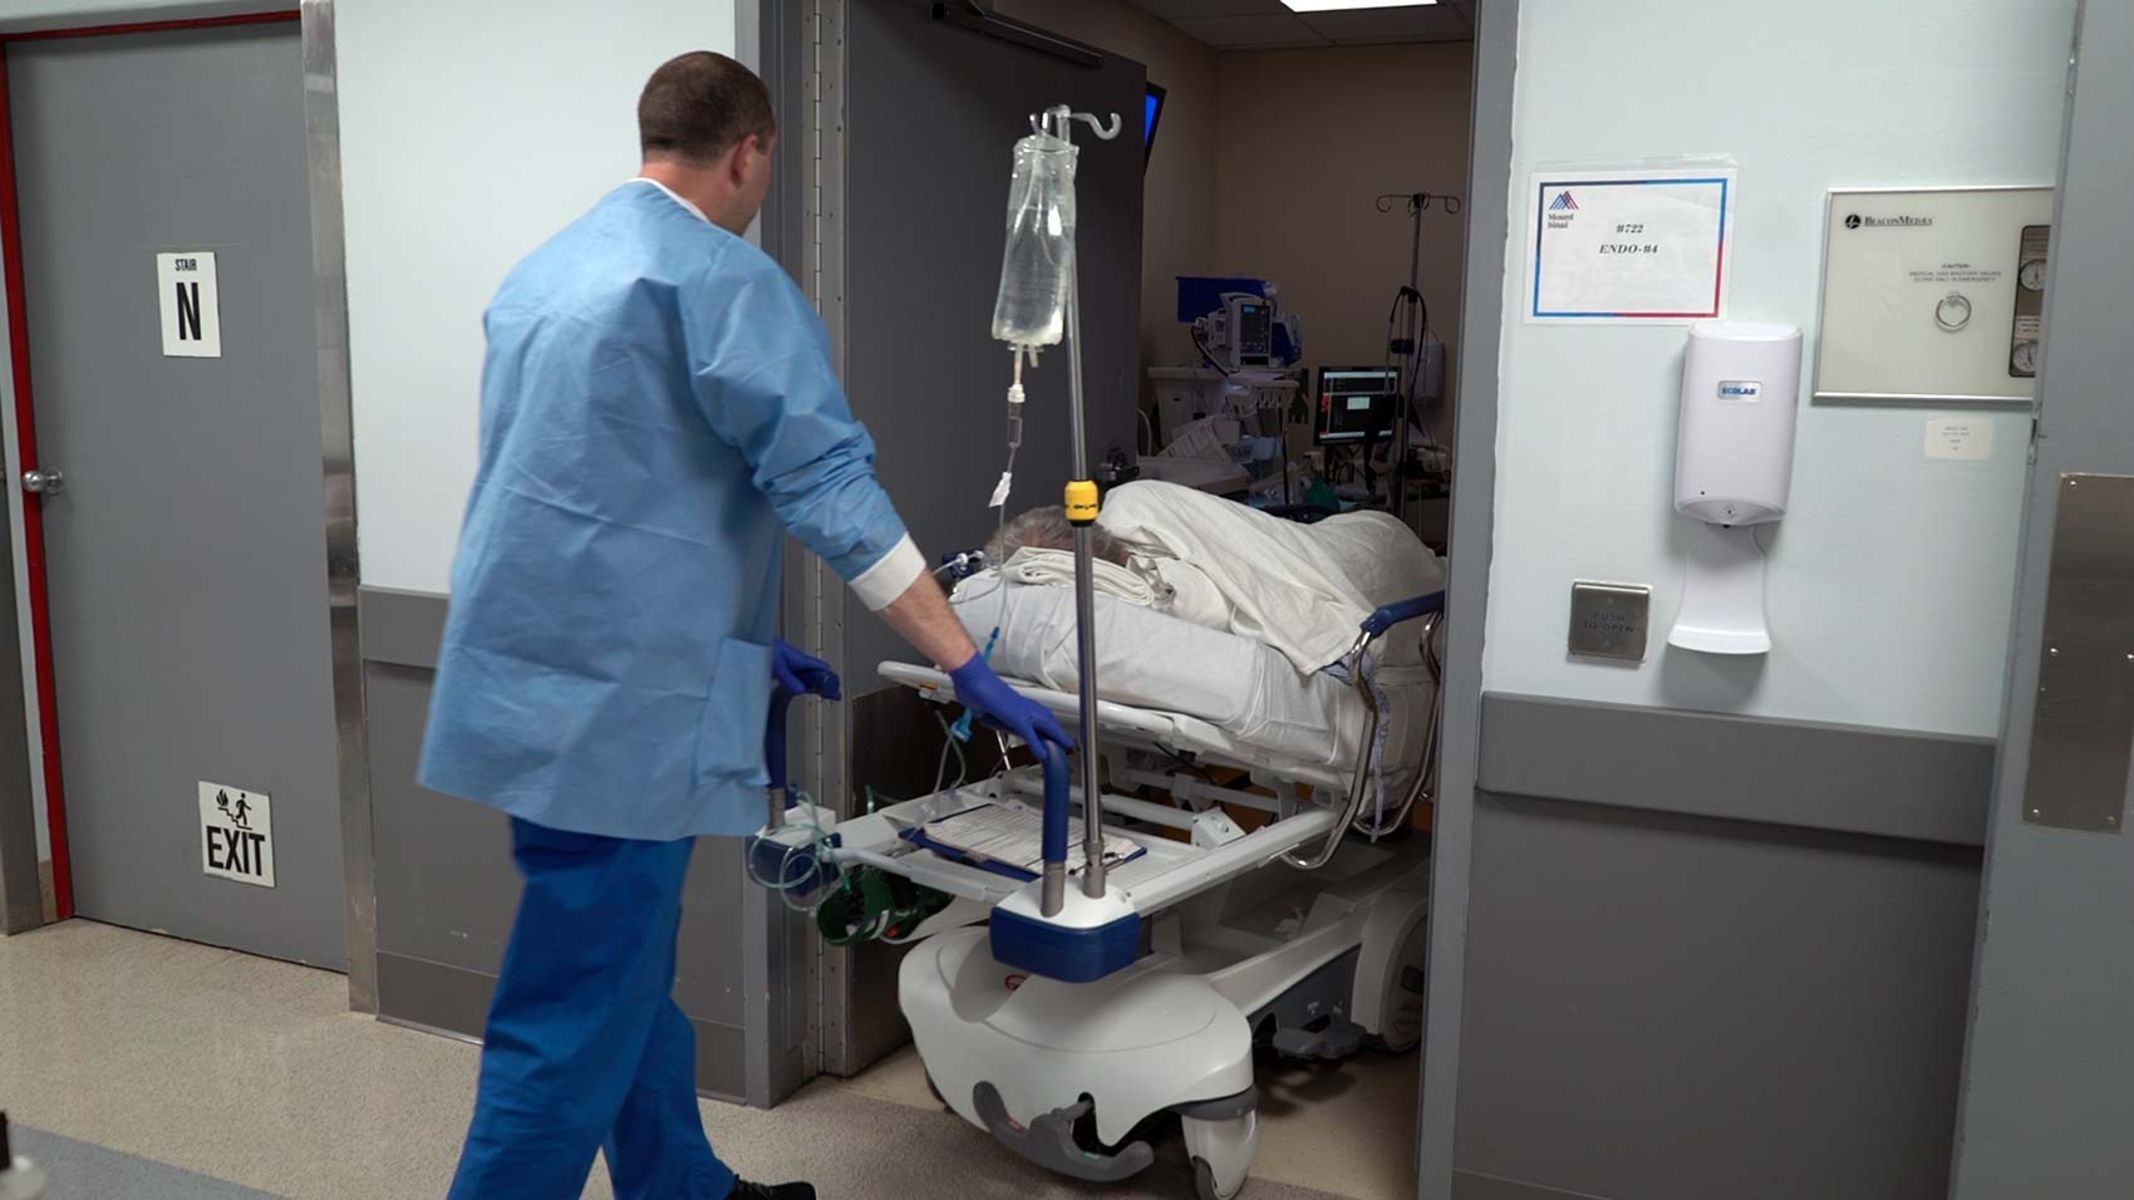 The patient is wheeled into the endoscopy suite where he will be sedated for the procedure.